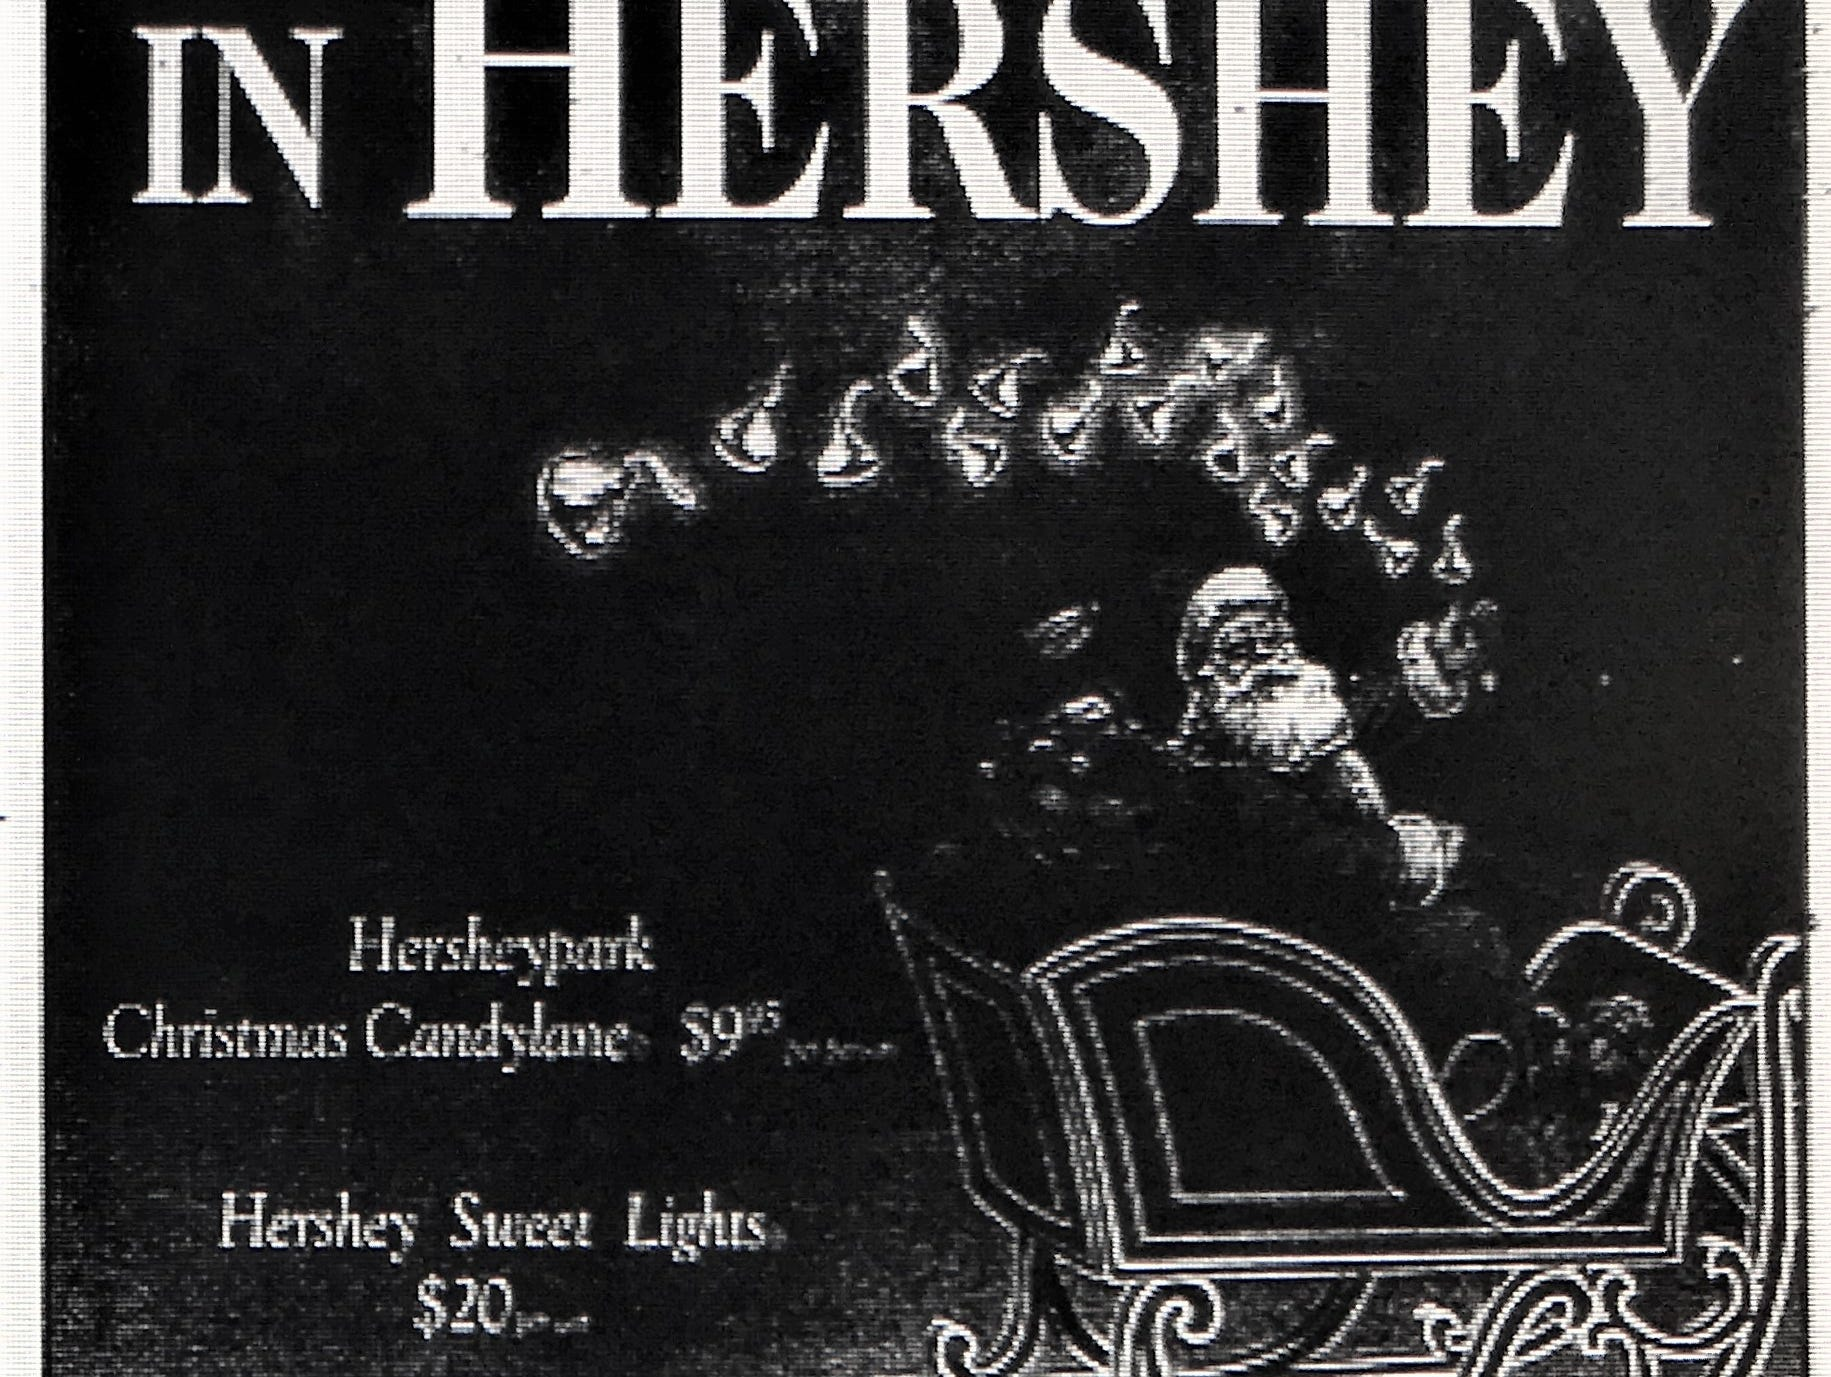 A 2008 ad for Christmas in Hershey event. The promotion appeared in a FlipsidePA insert on Thursday, November 27, 2008.